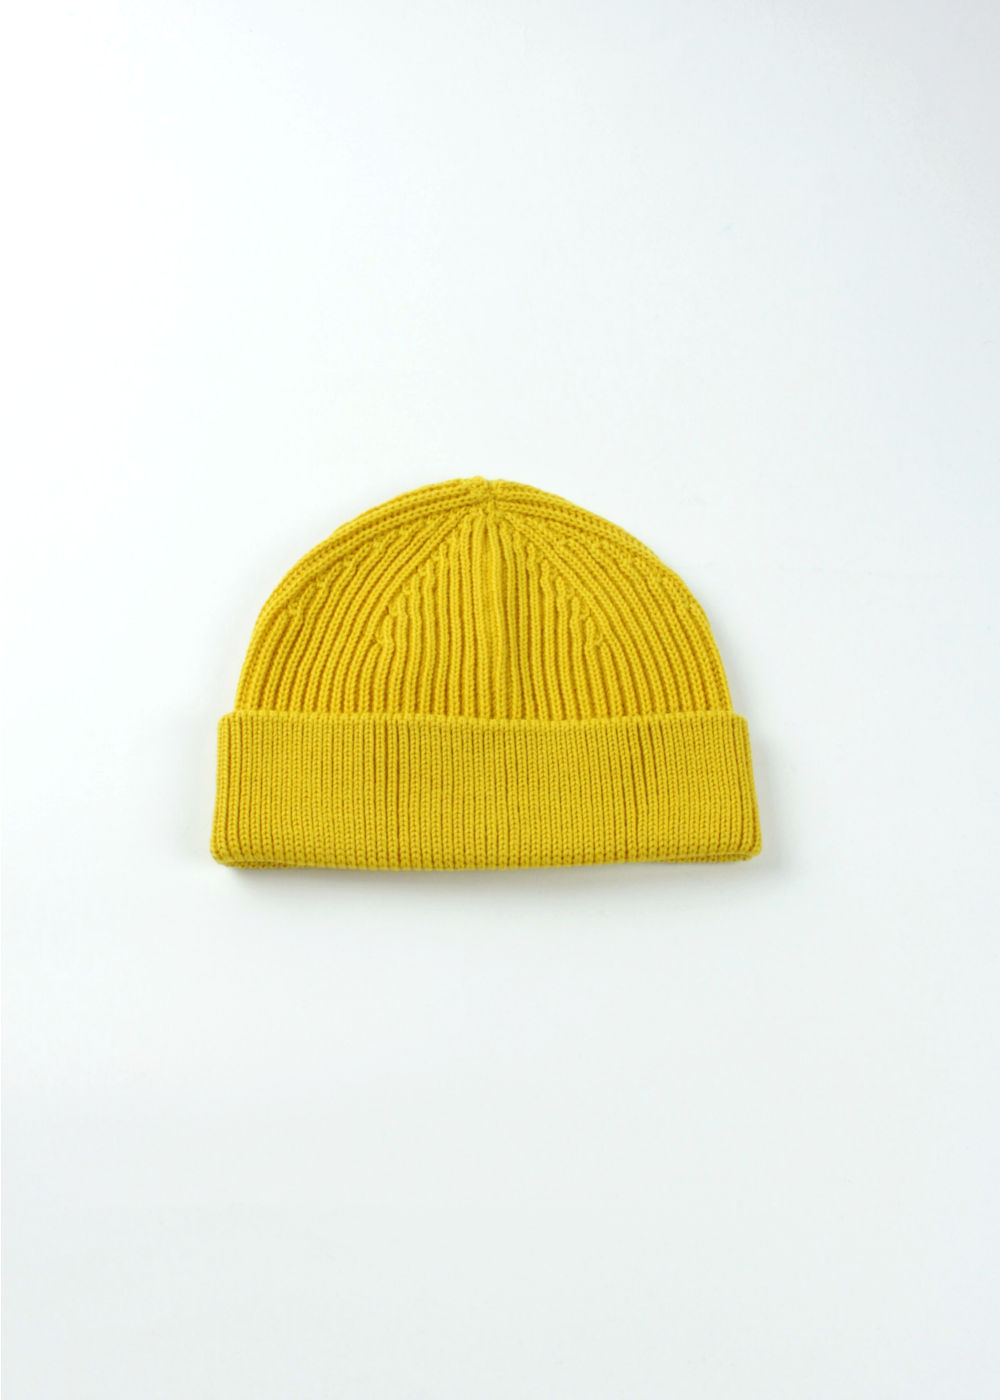 Andersen-Andersen-Beanie Medium-Yellow-01